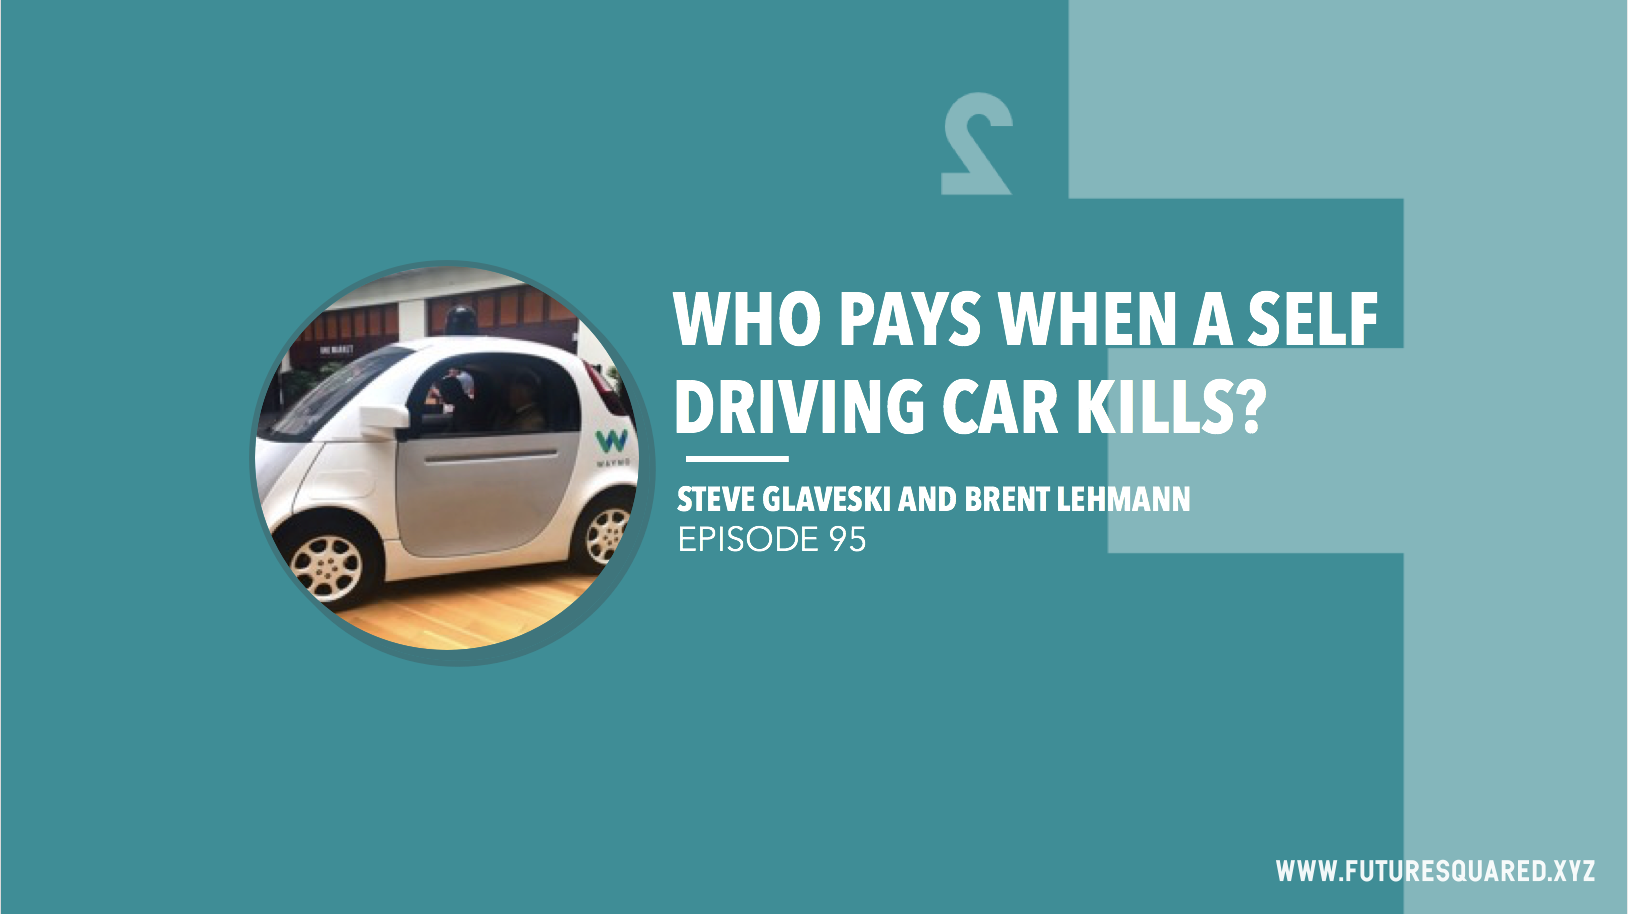 Future Squared Episode #95: Who Pays When a Self Driving Car Kills?